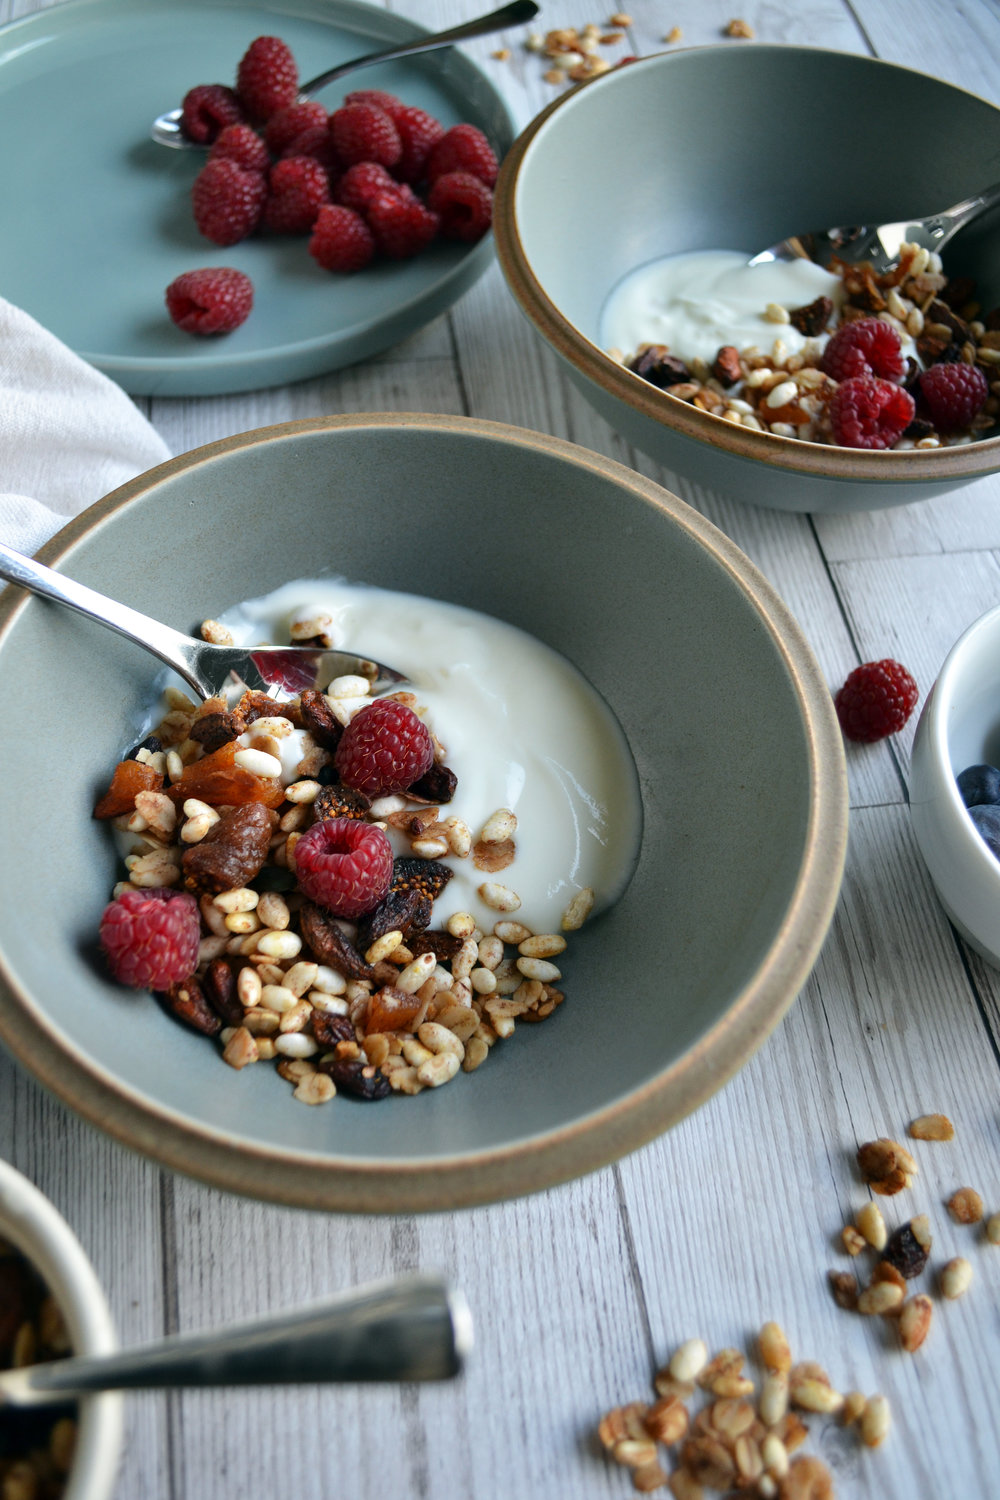 Homemade fruity granola | The Flourishing Pantry